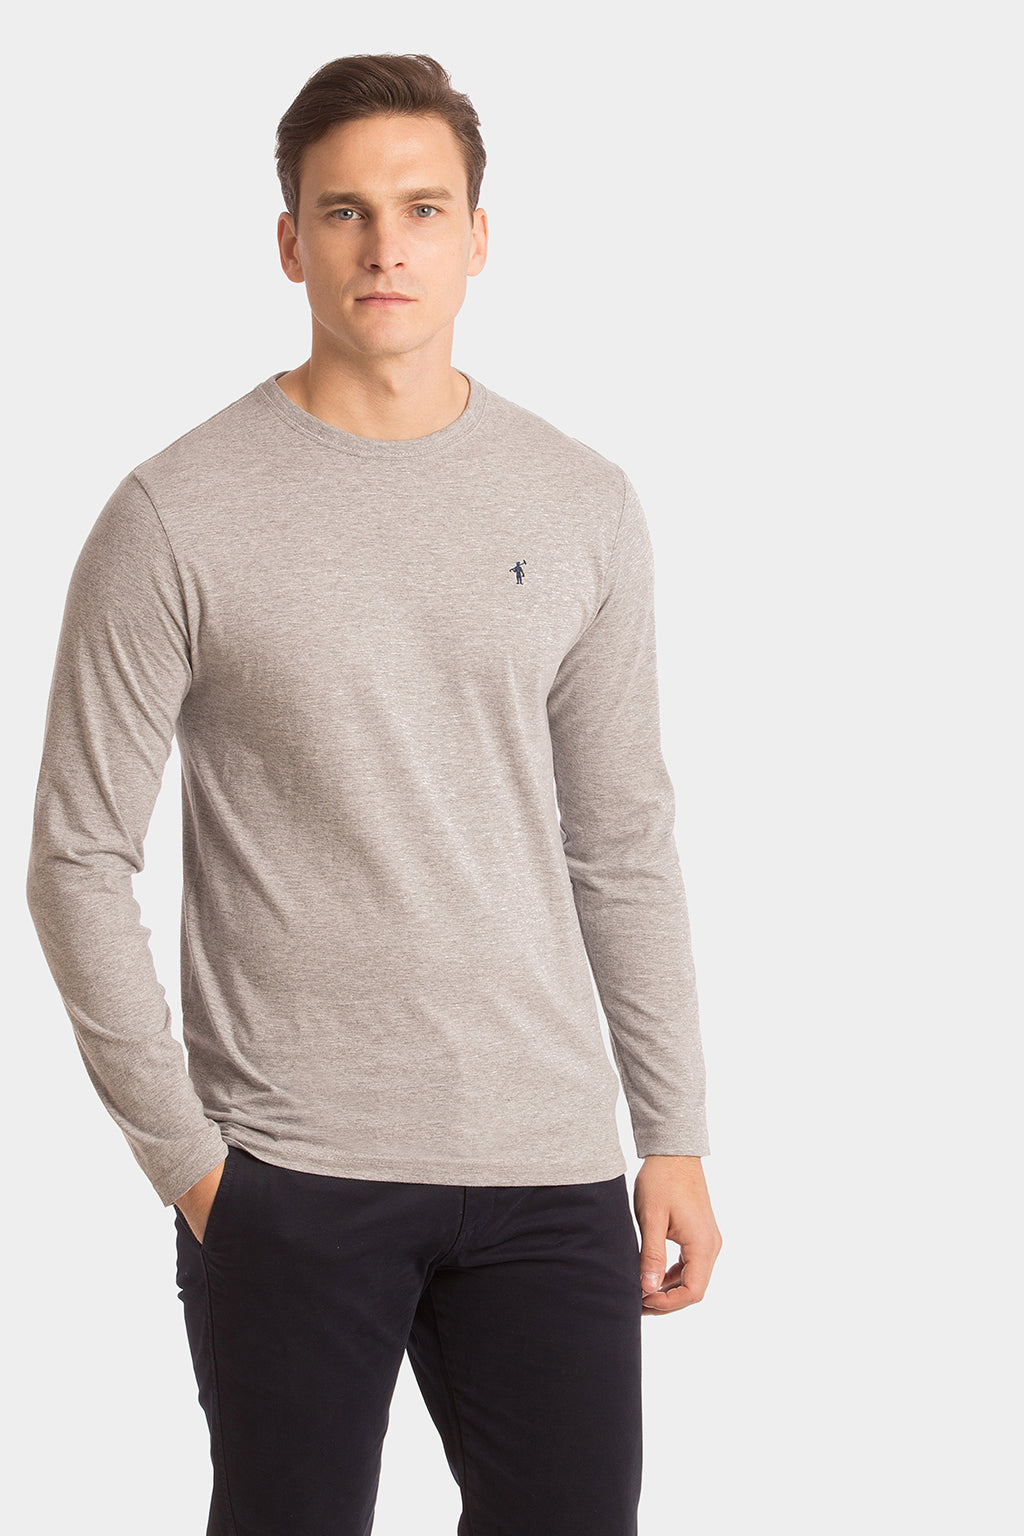 Grey vigore long sleeve tee with embroidery